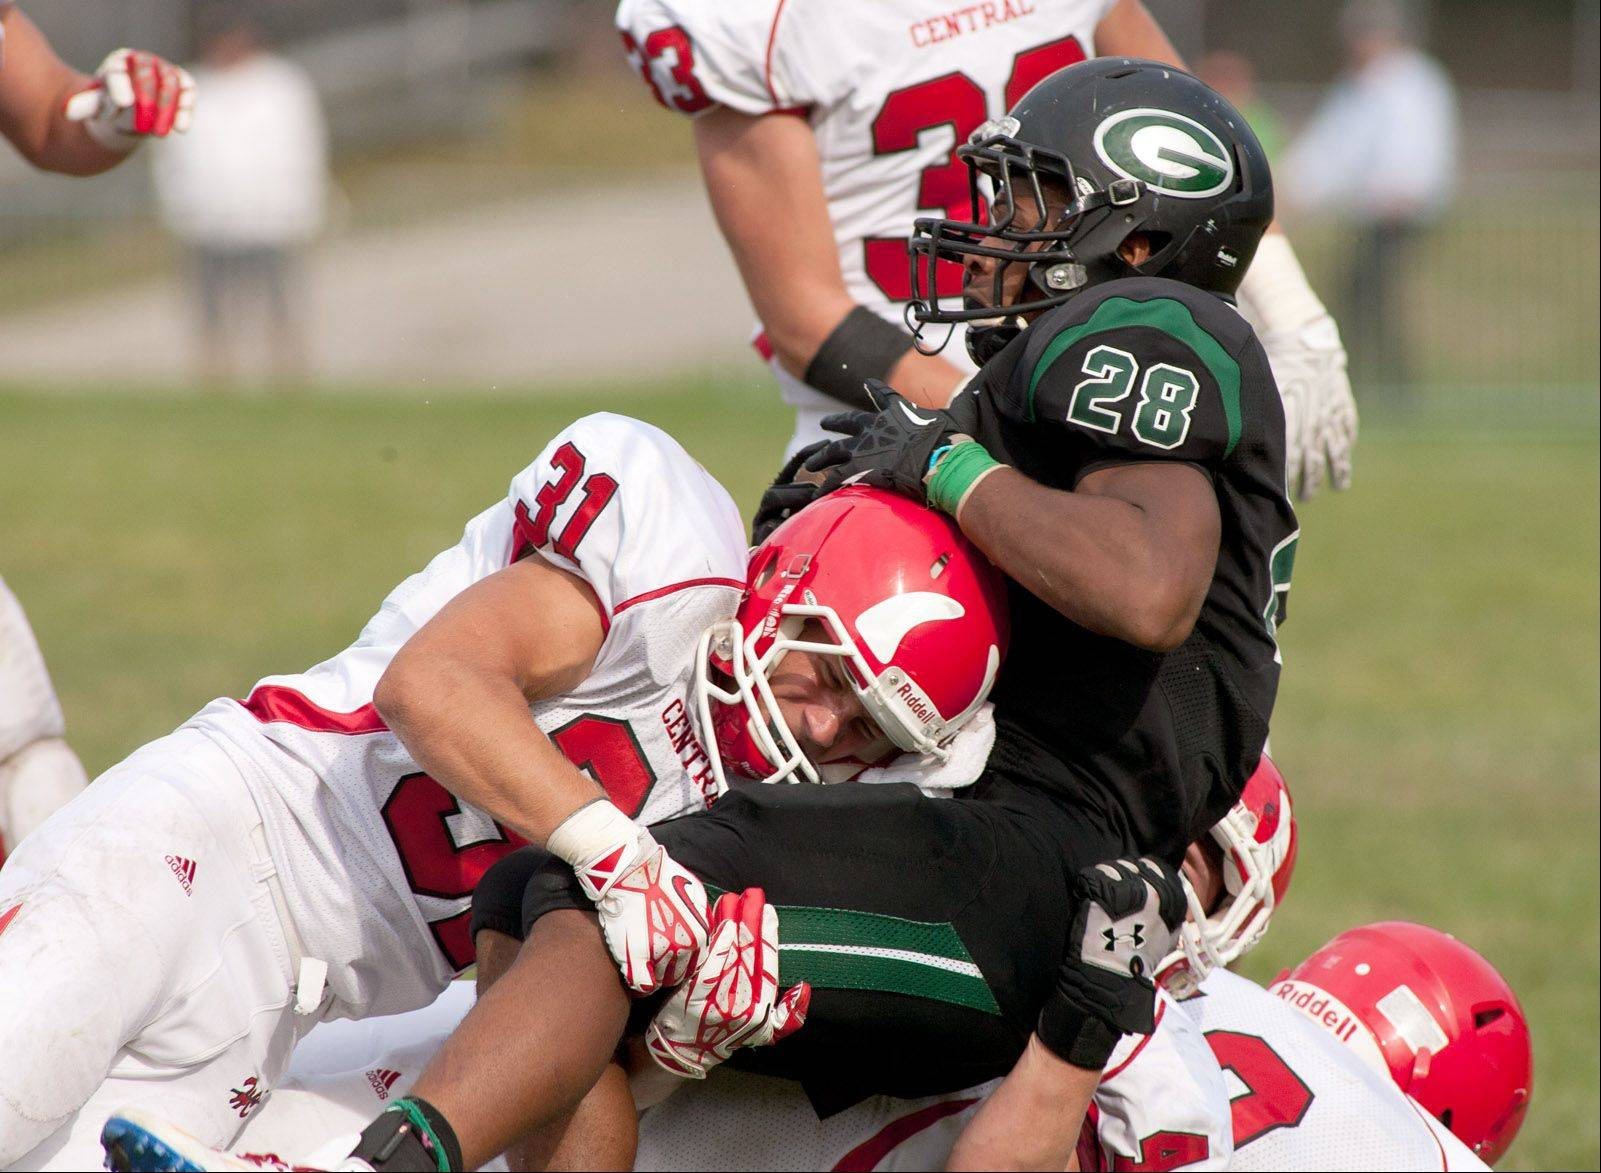 Glenbard West's Jermon Kindle Joyner is tackled by Hinsdale Central's Matt King.